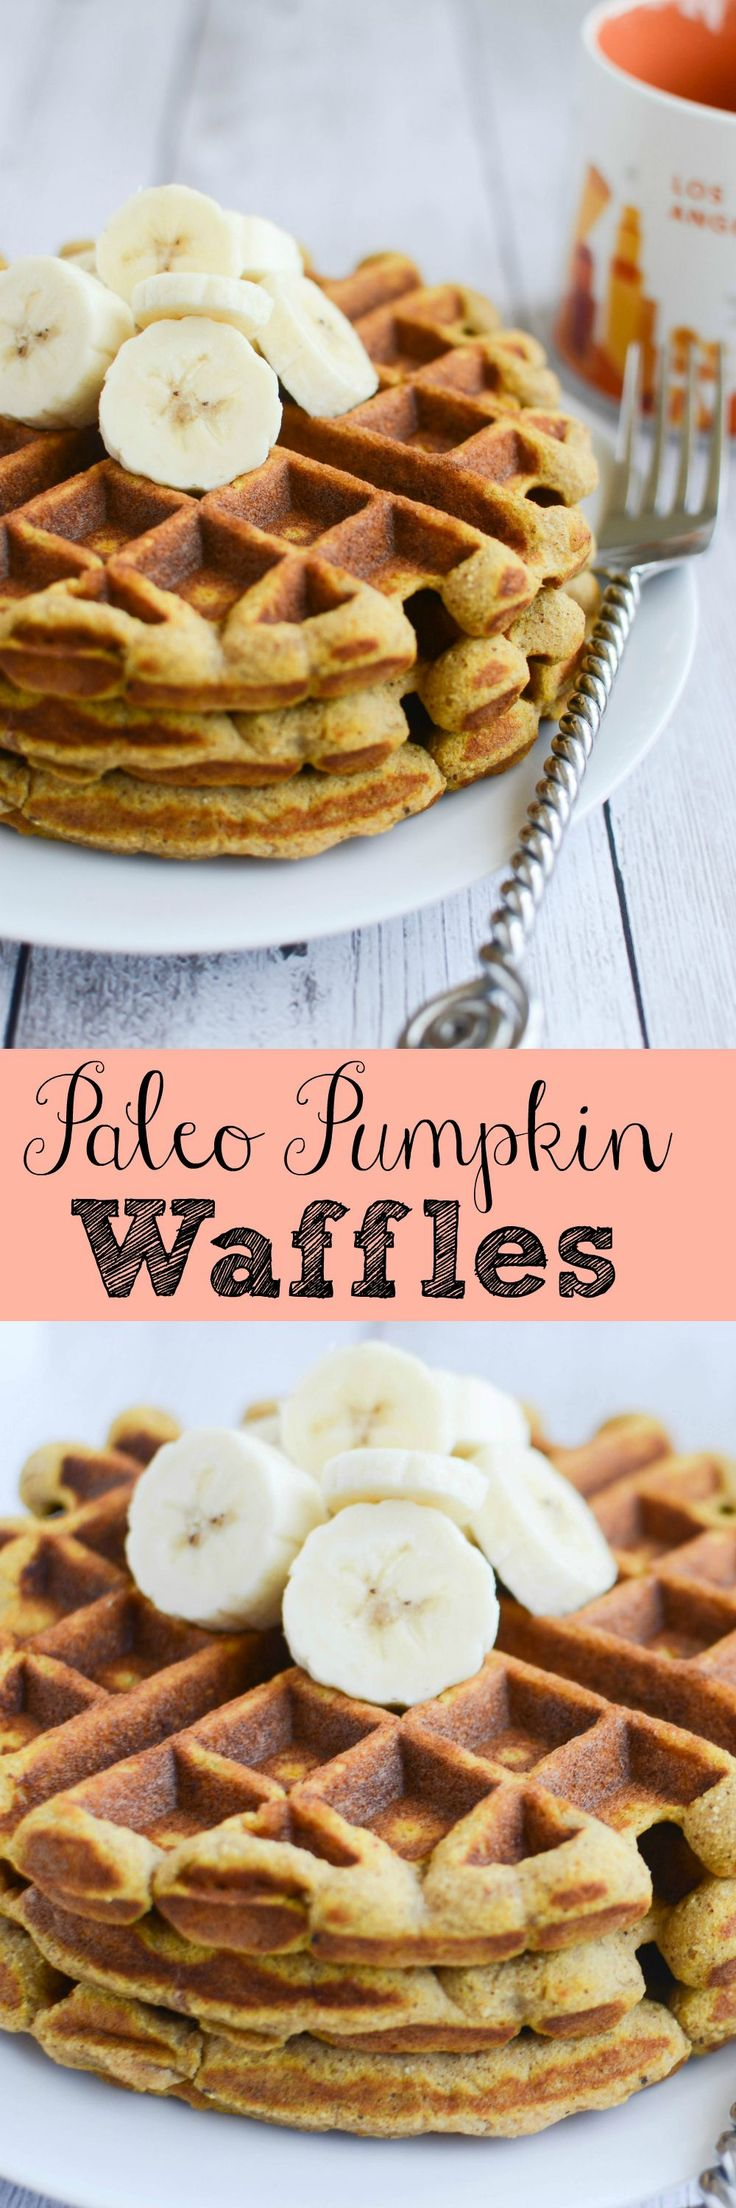 Paleo Pumpkin Waffles - healthy and delicious waffles recipe!